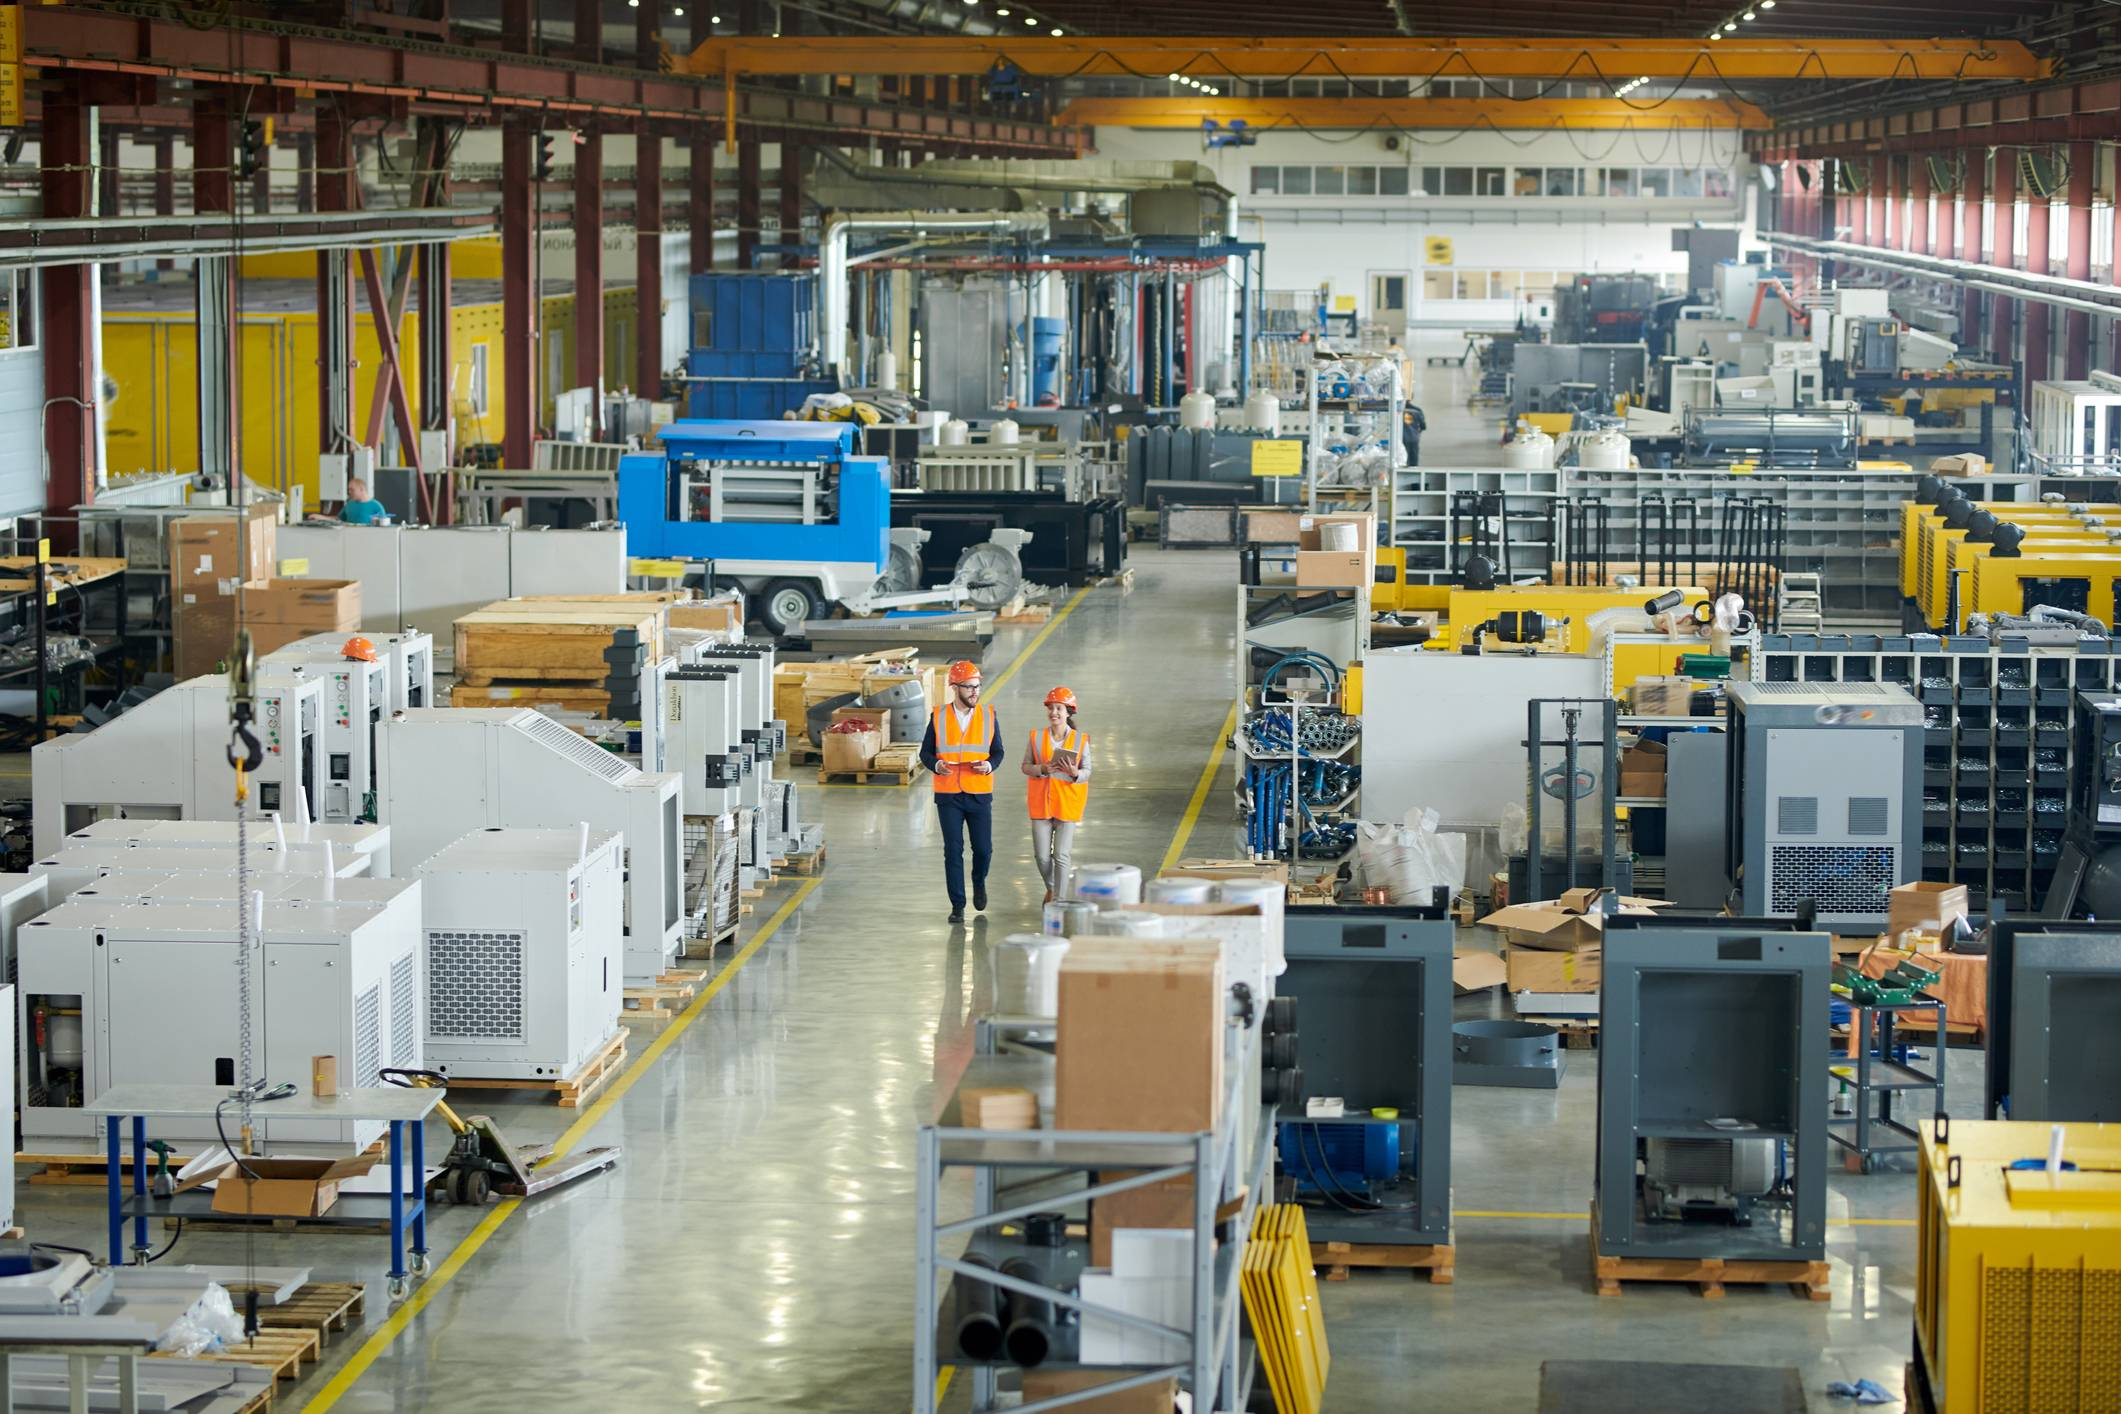 well-designed-constructed-clean-manufacturing-facility-with-workers-the-samuels-group